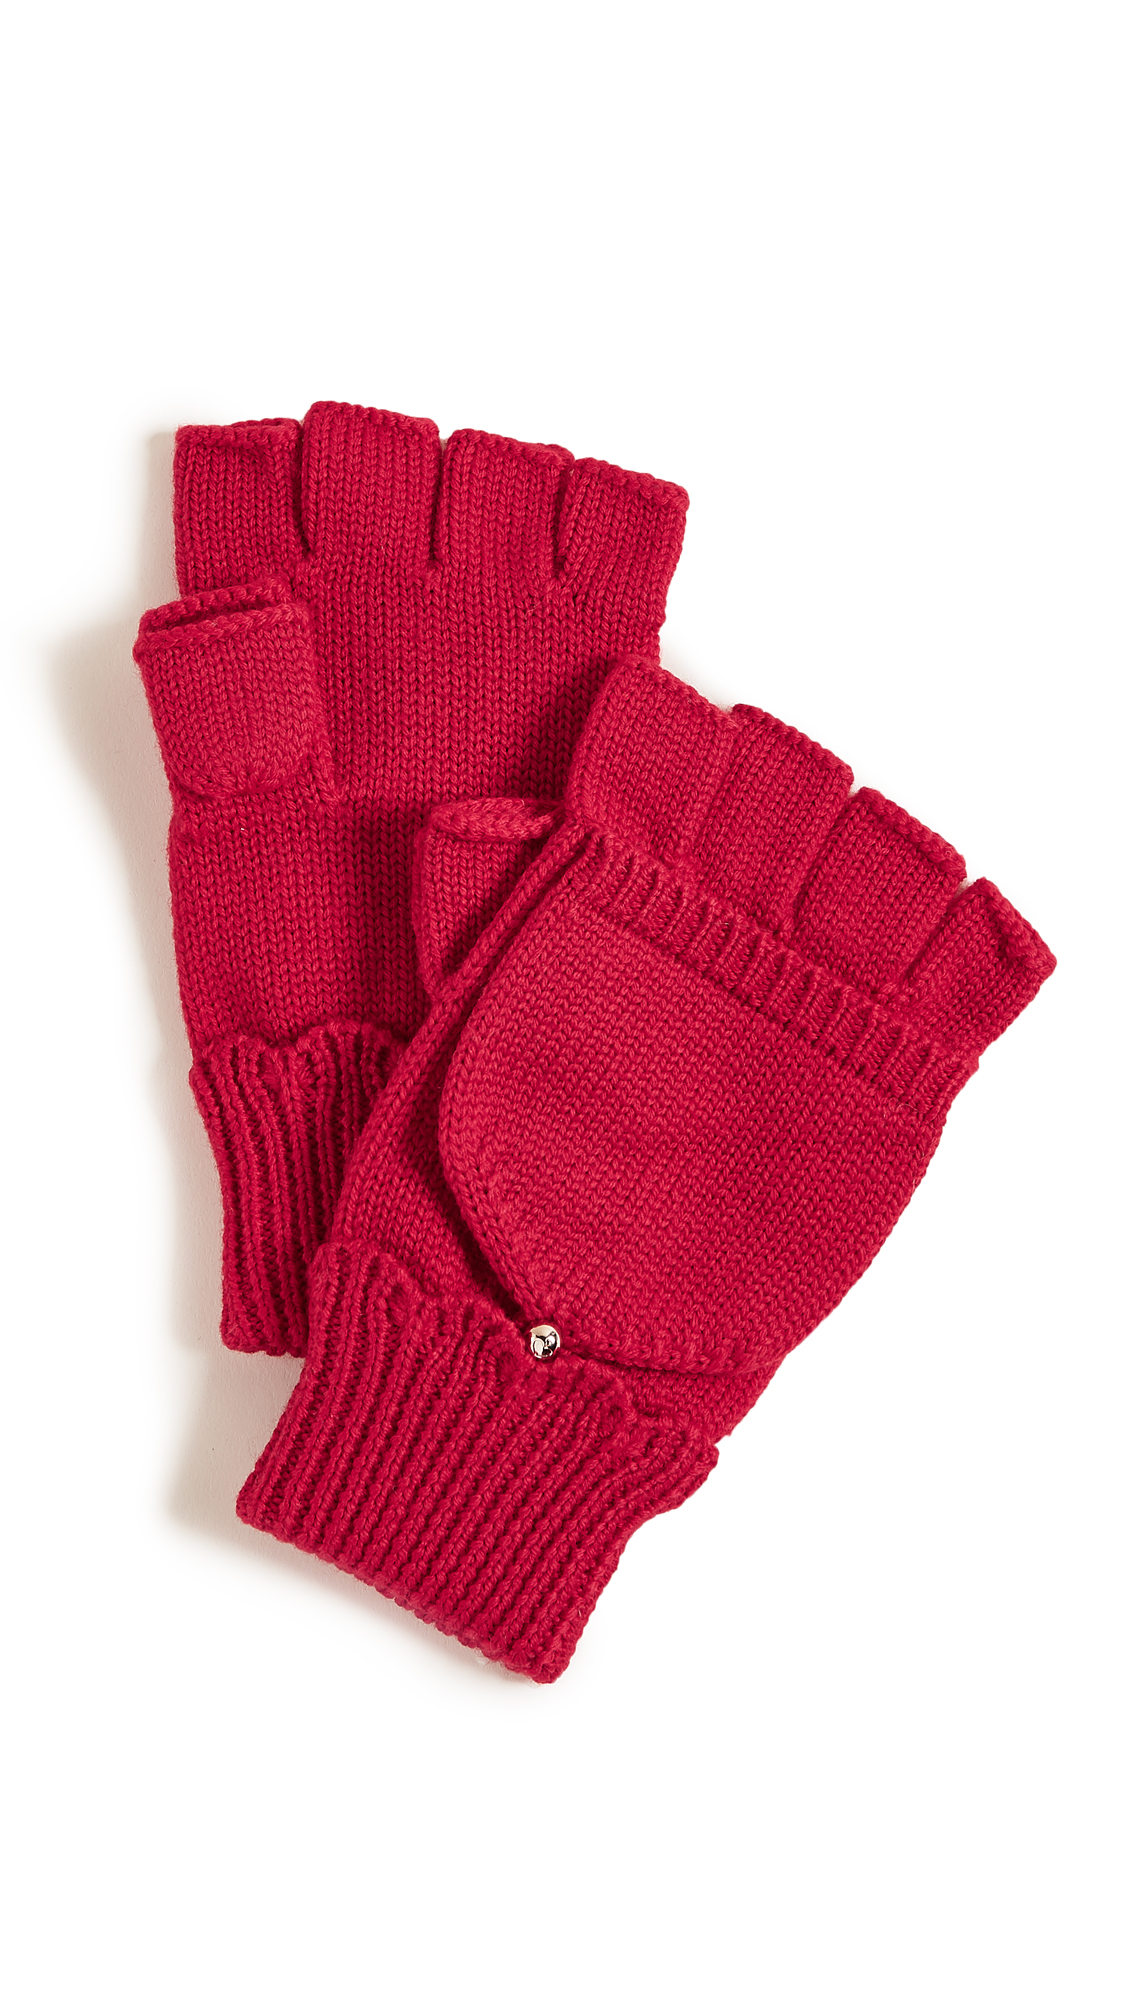 Kate Spade New York Scallop Pop Top Mittens - Charm Red